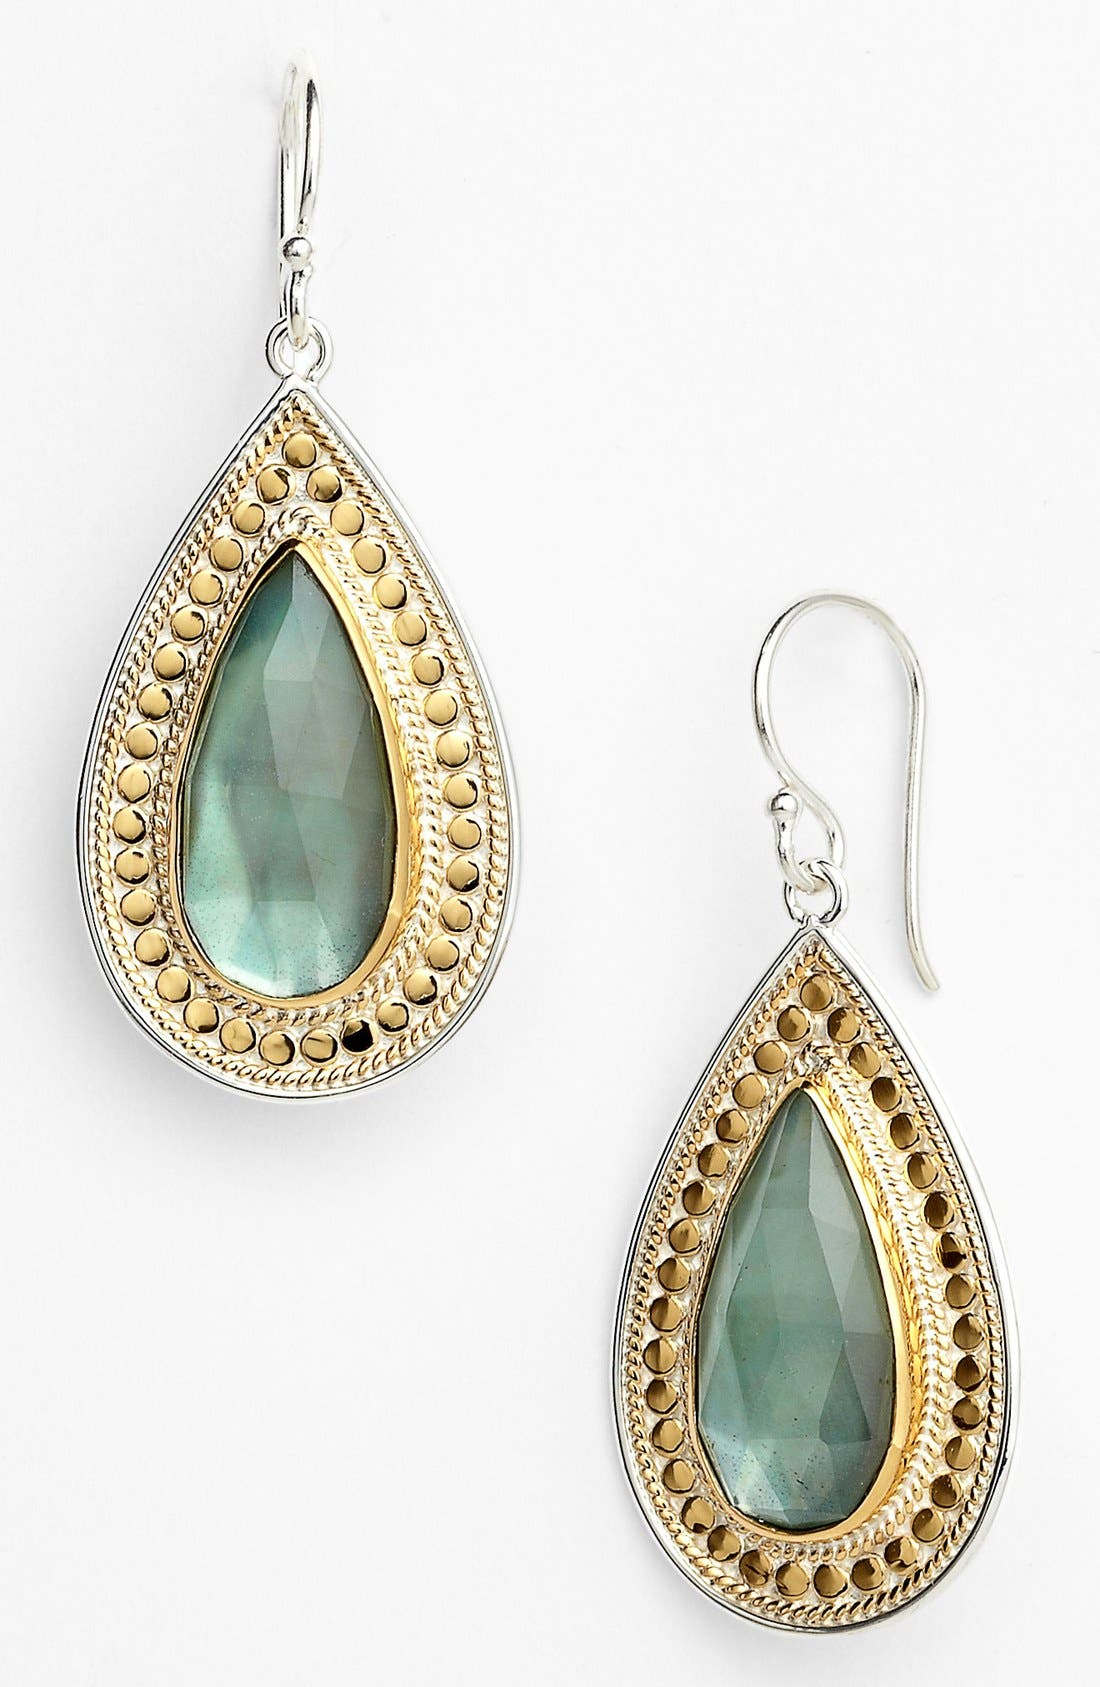 Main Image - Anna Beck 'Gili' Large Teardrop Earrings